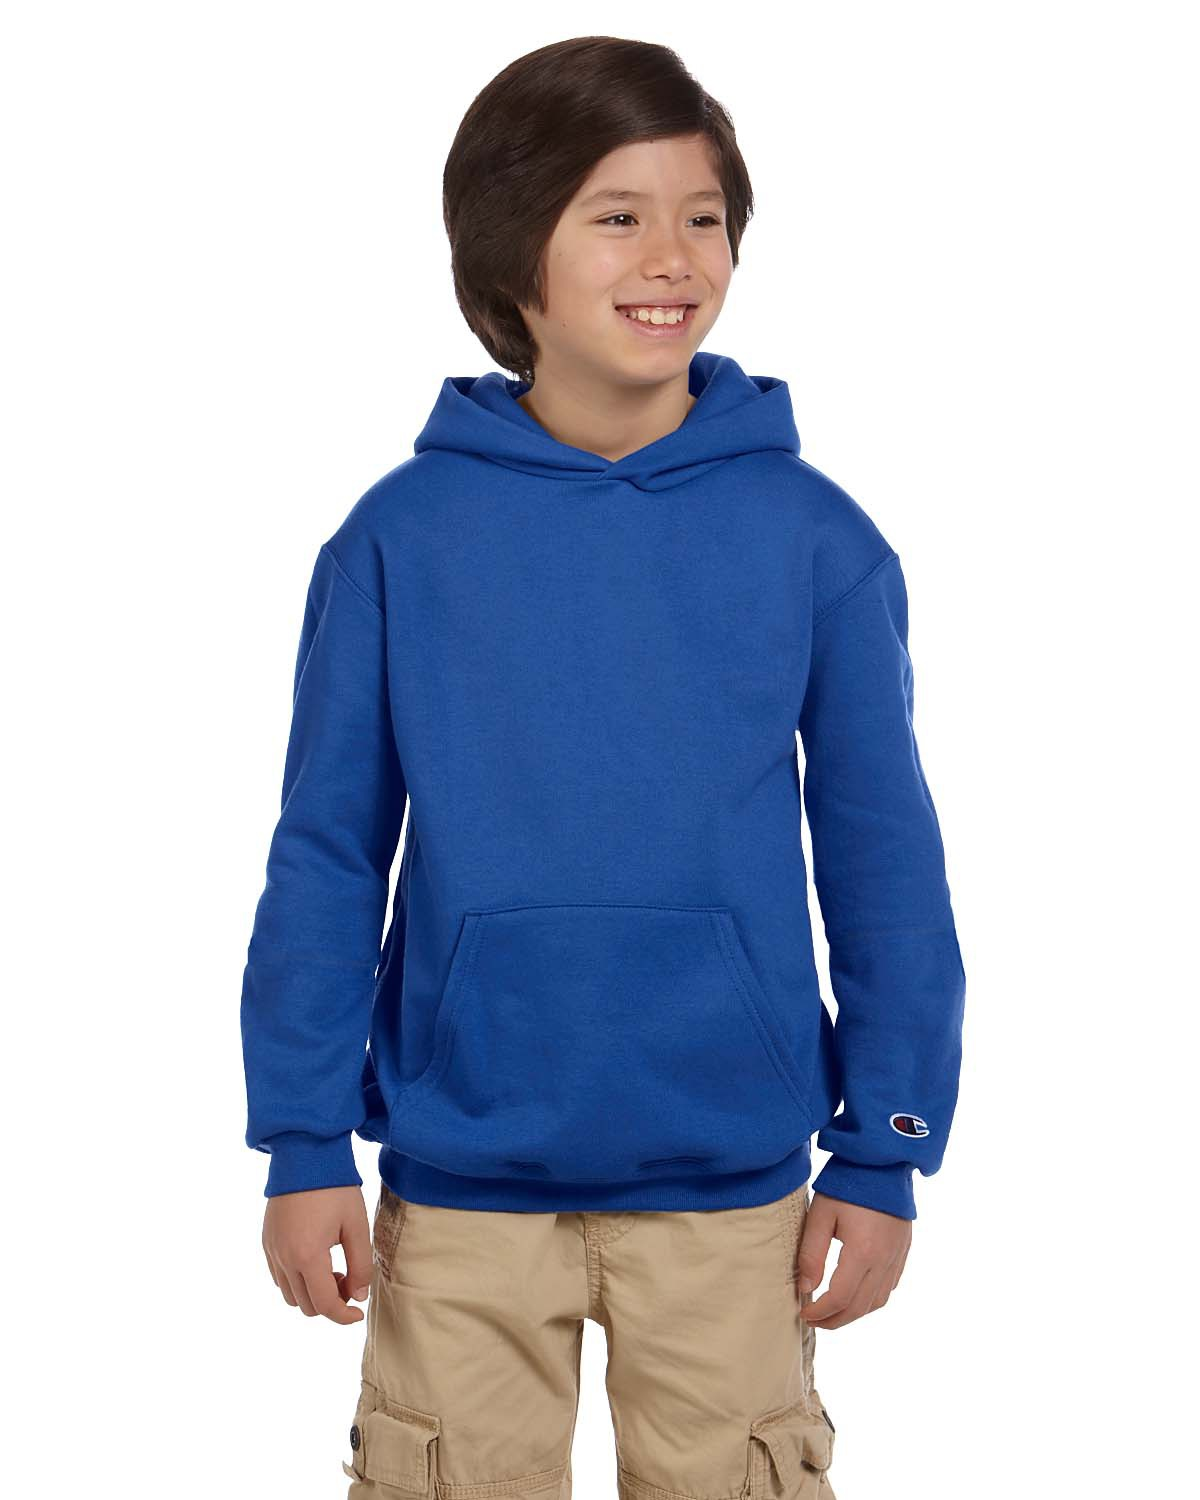 Champion S790 Youth  9 oz., 50/50 EcoSmartPullover Hood